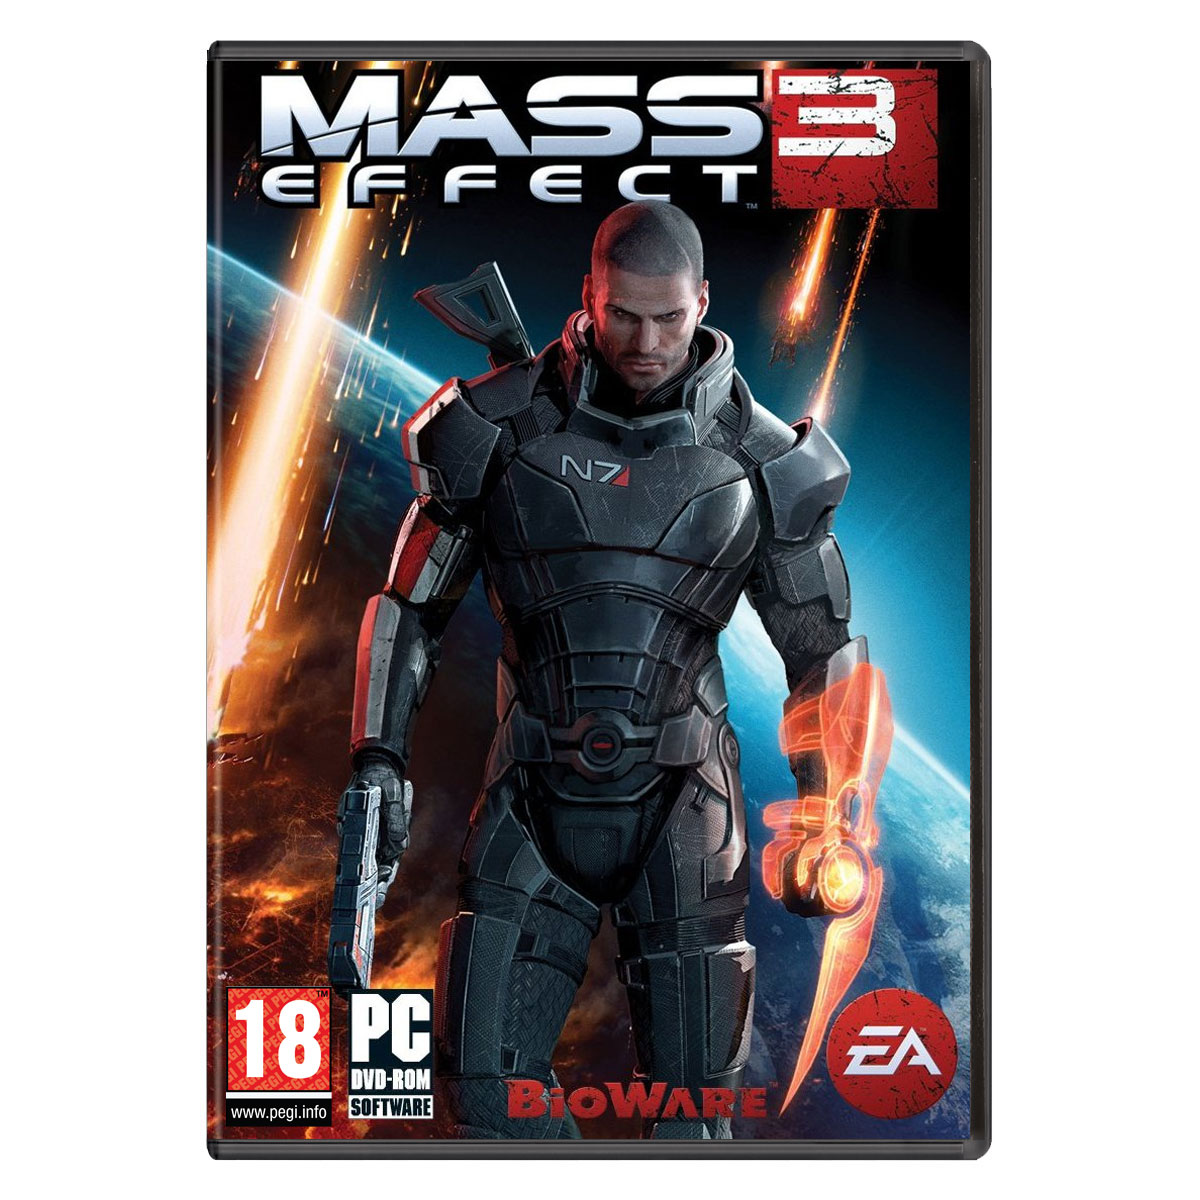 Jeux PC Mass Effect 3 - Edition Collector N7 (PC) Mass Effect 3 - Edition Collector N7 (PC)